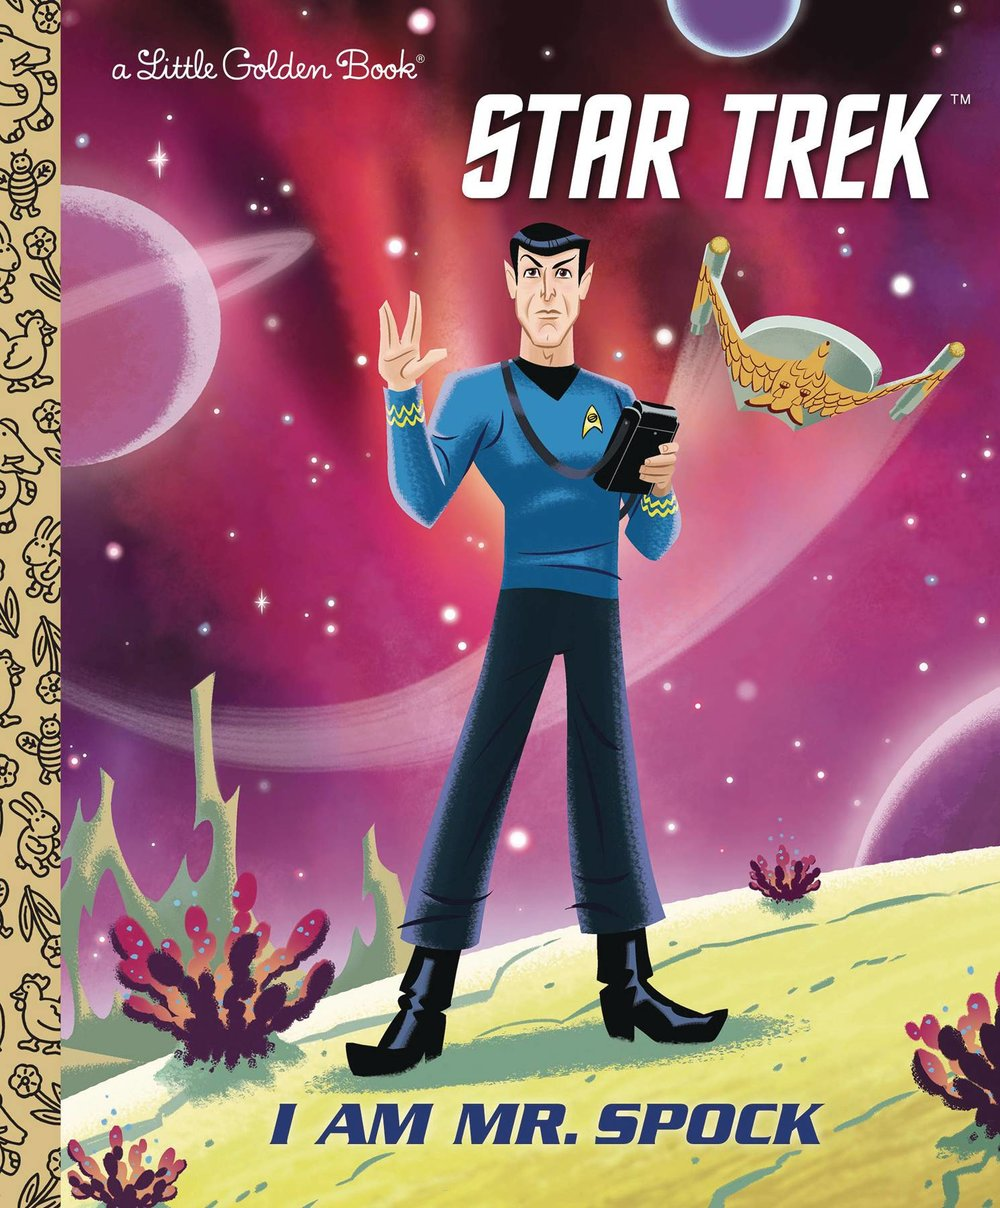 I AM MR SPOCK LITTLE GOLDEN BOOK.jpg